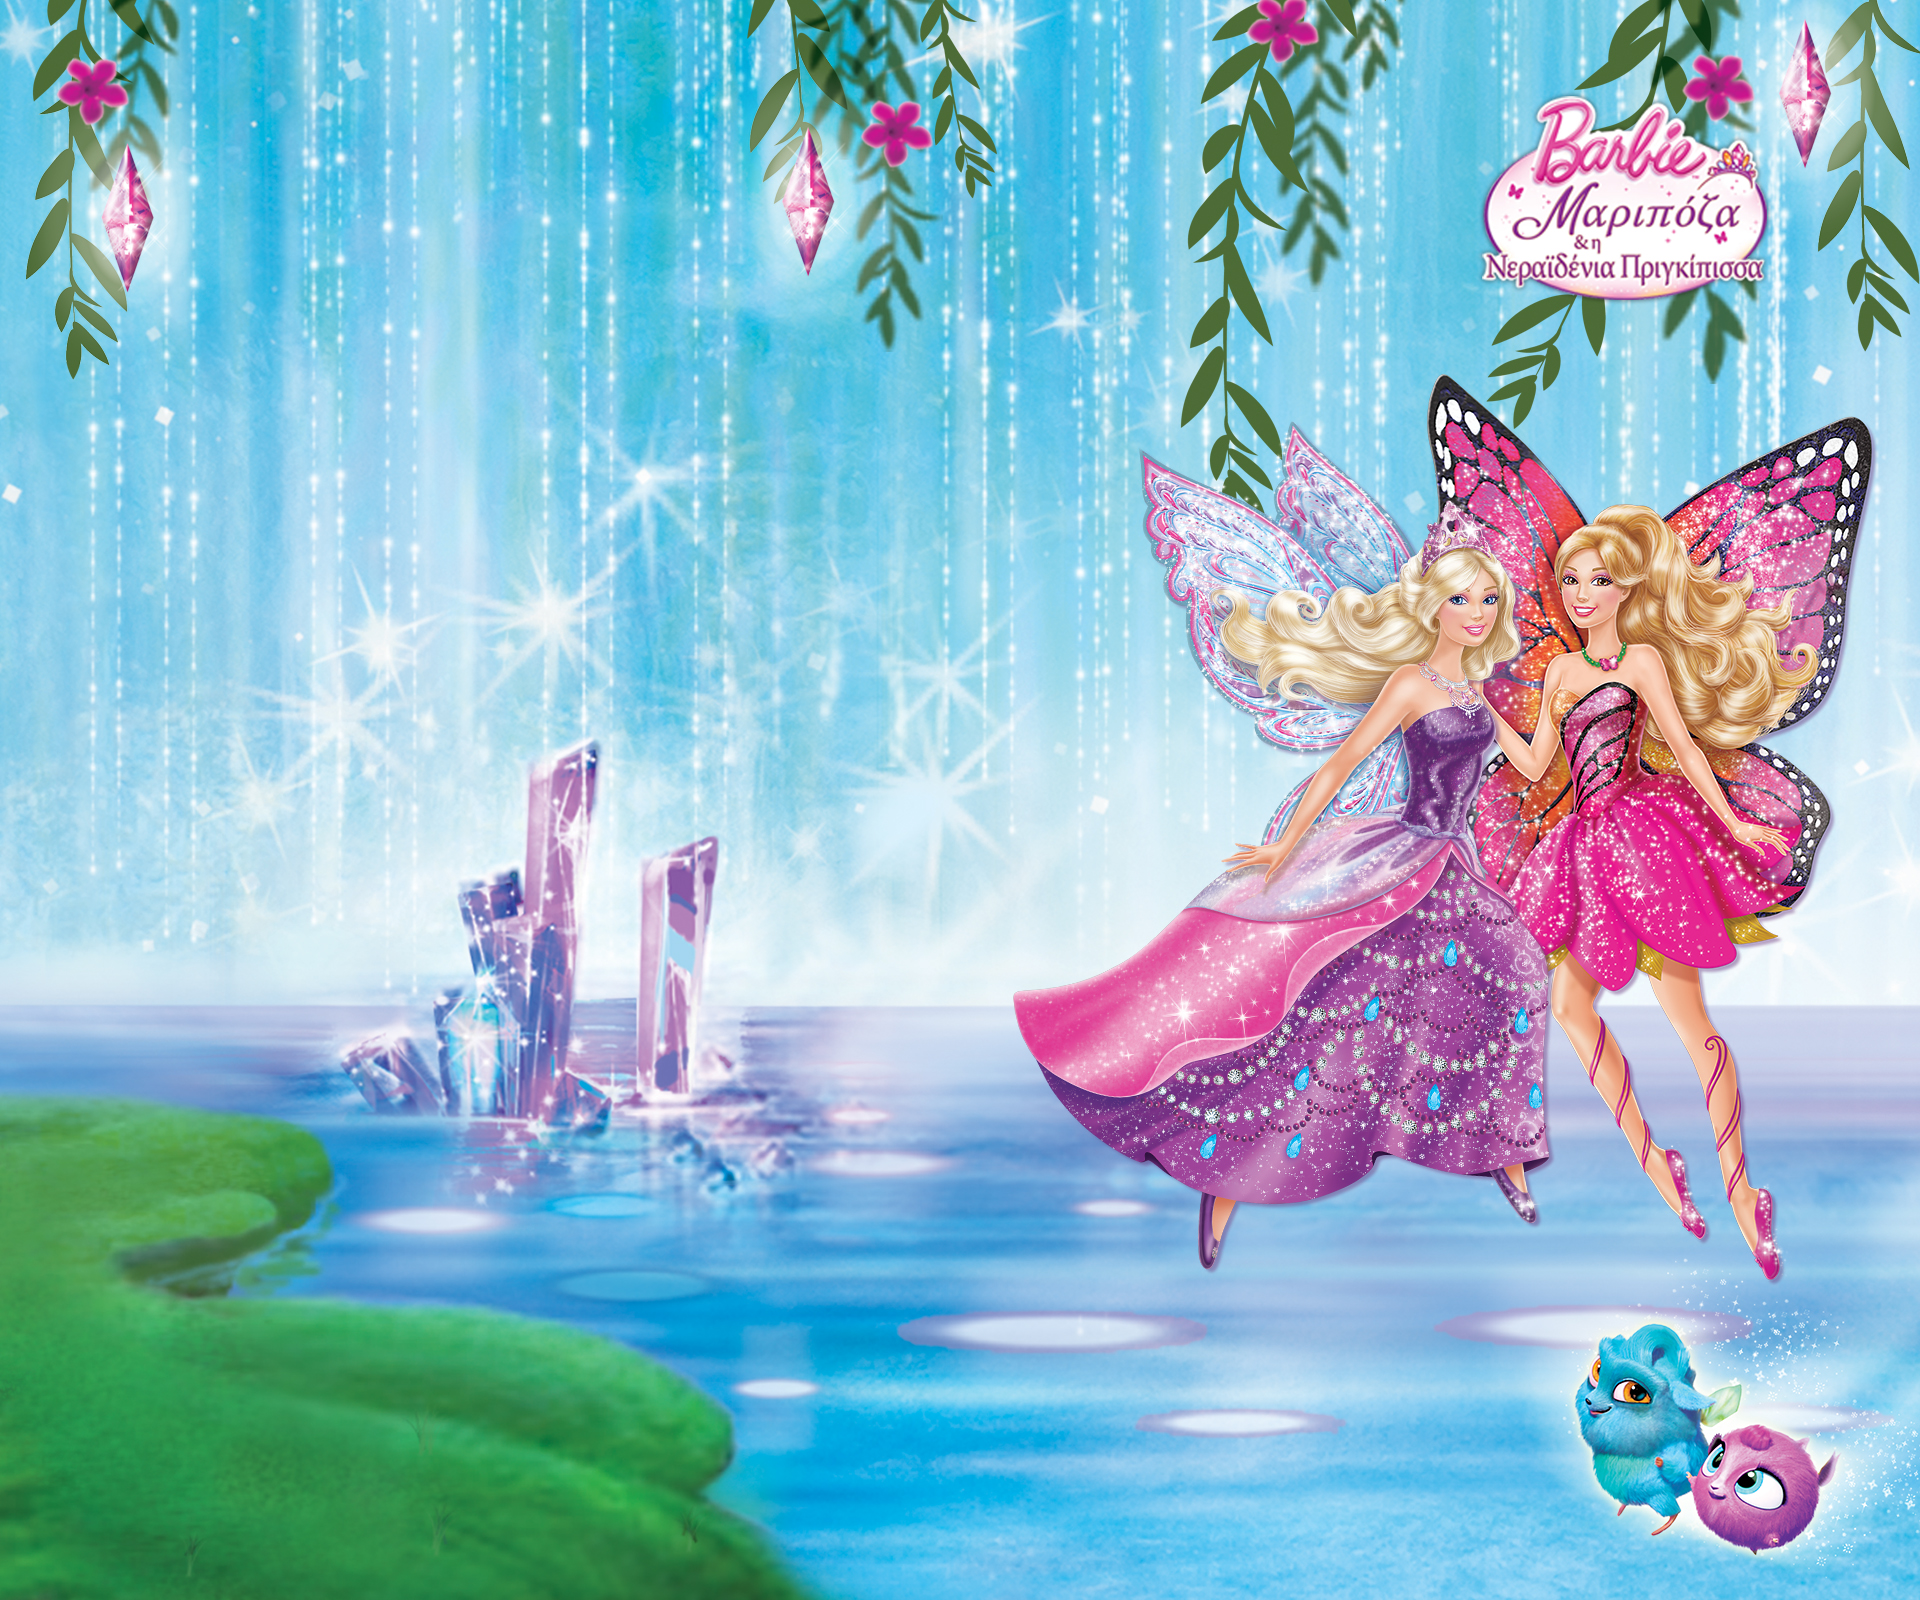 Halil4143 Afbeeldingen Barbie Mariposa And The Fairy Princess Hd